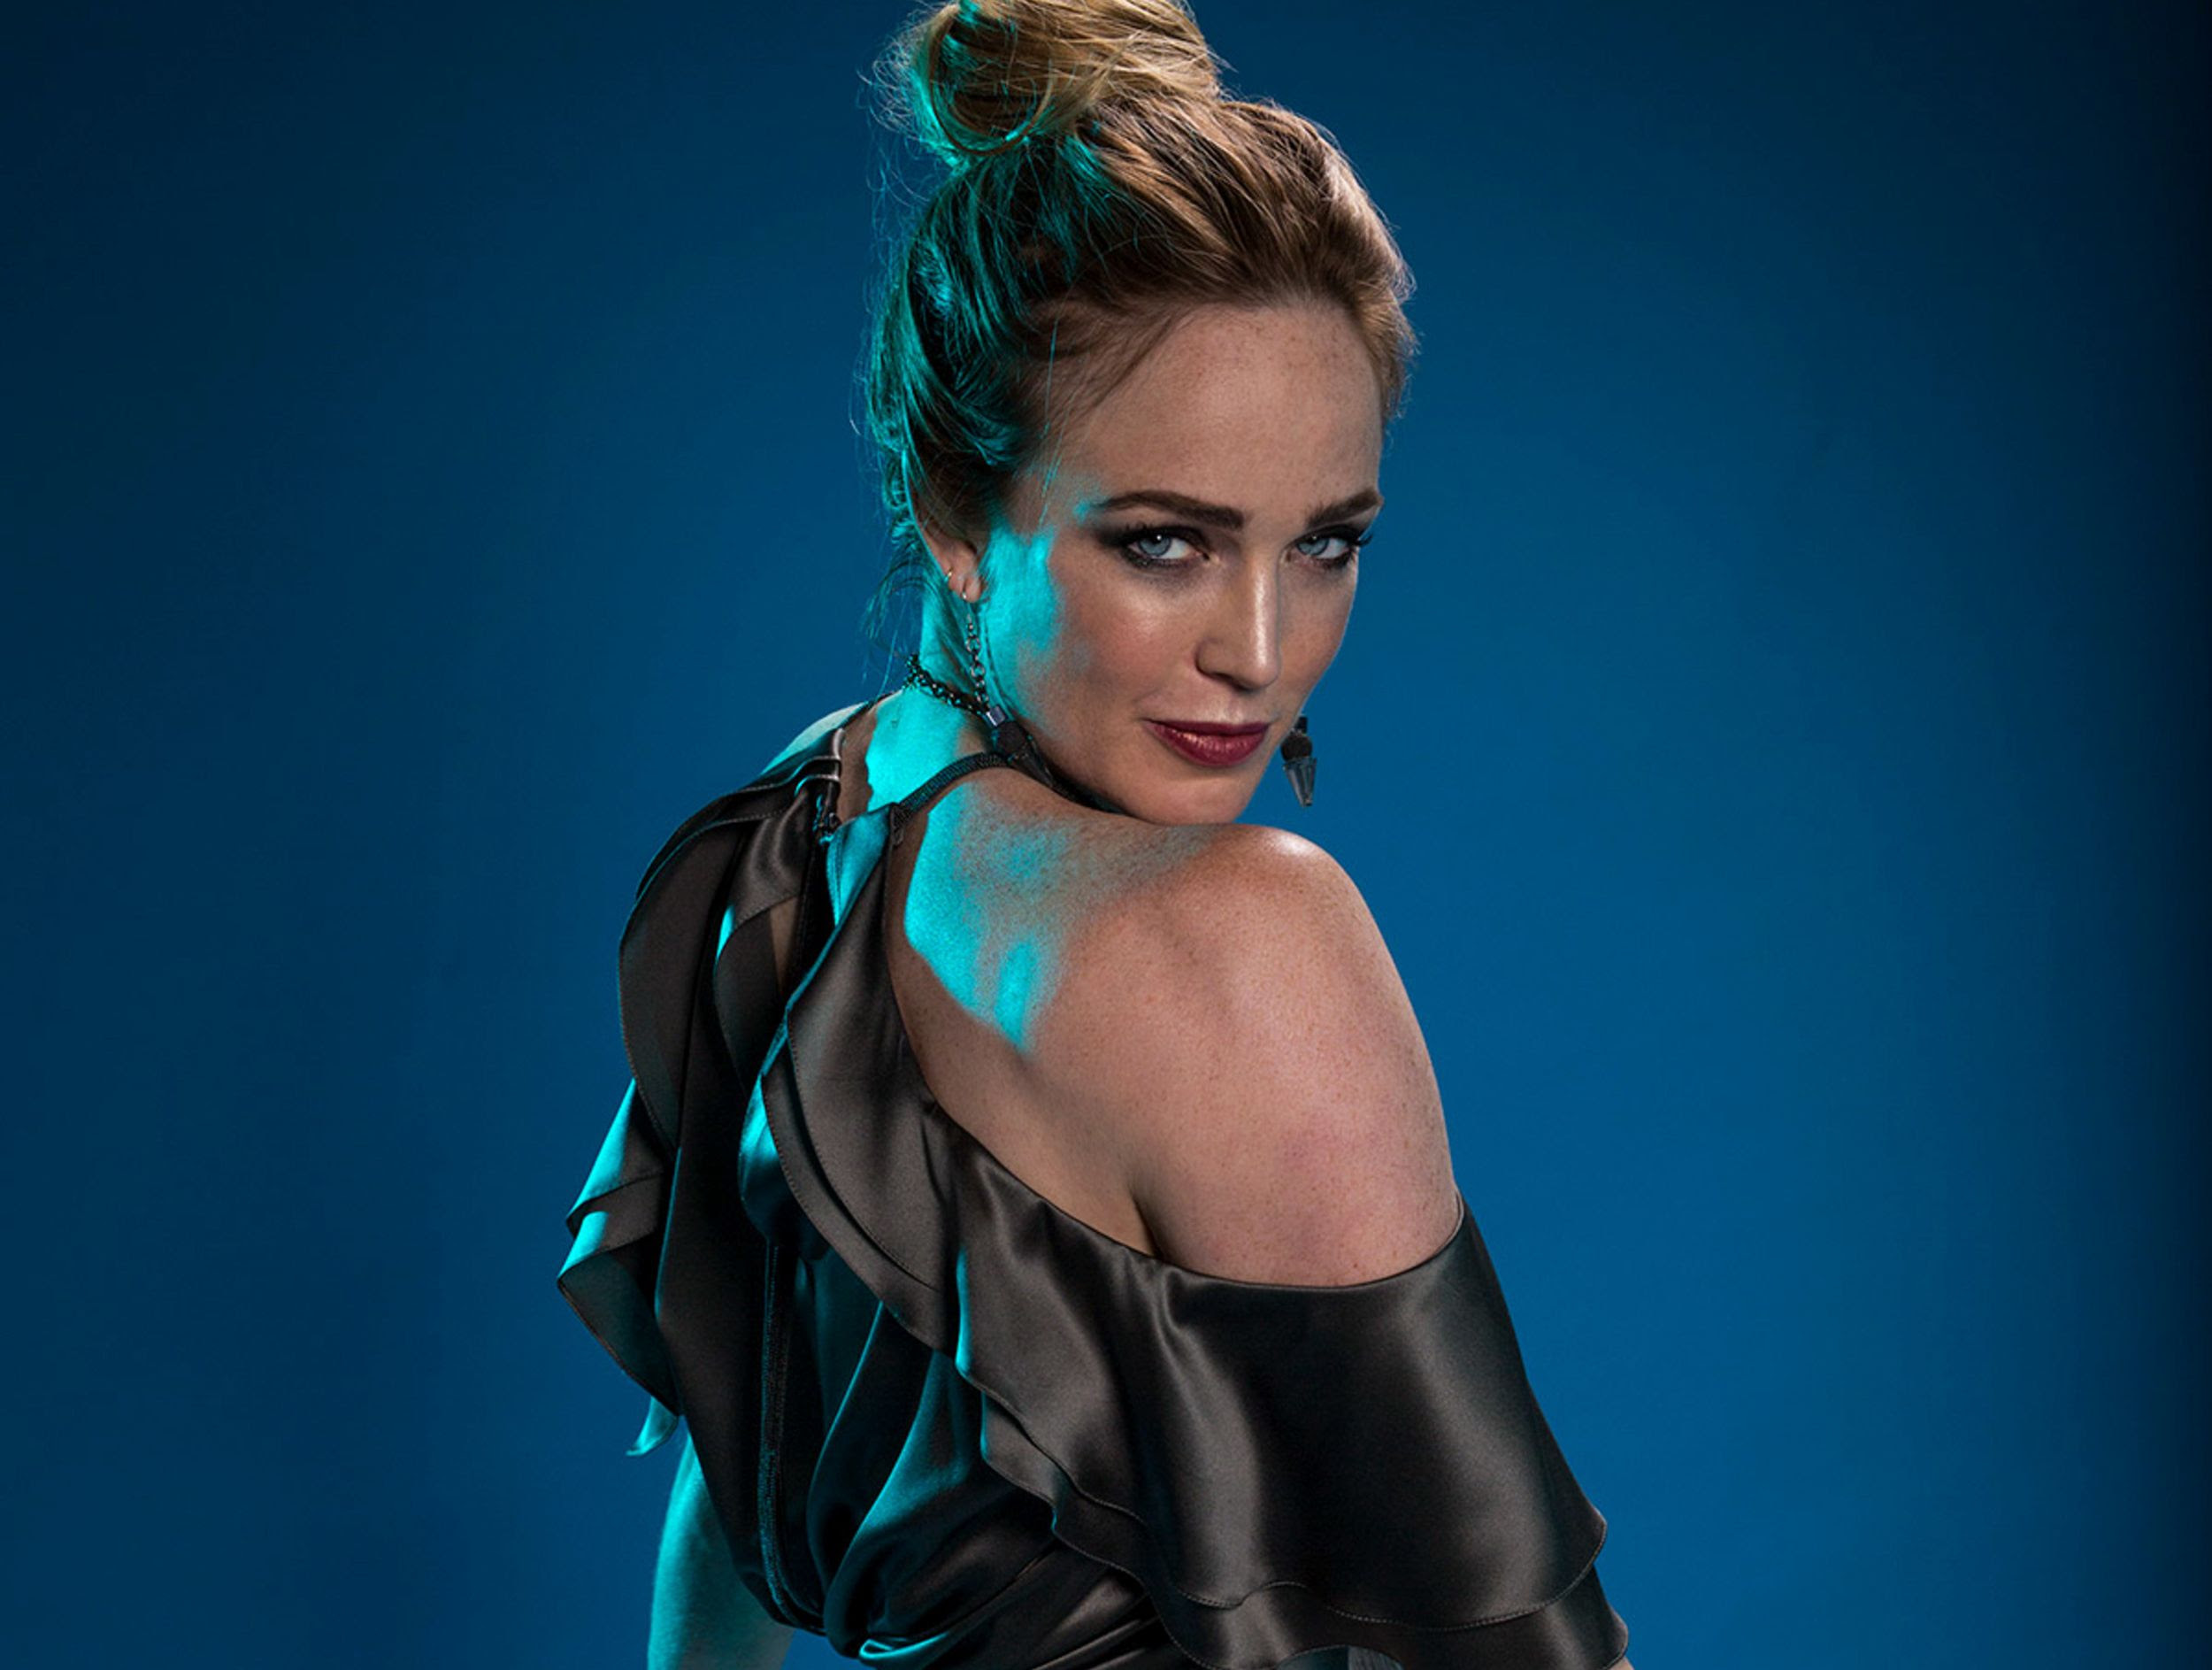 Caity Lotz Wallpapers For Everyone